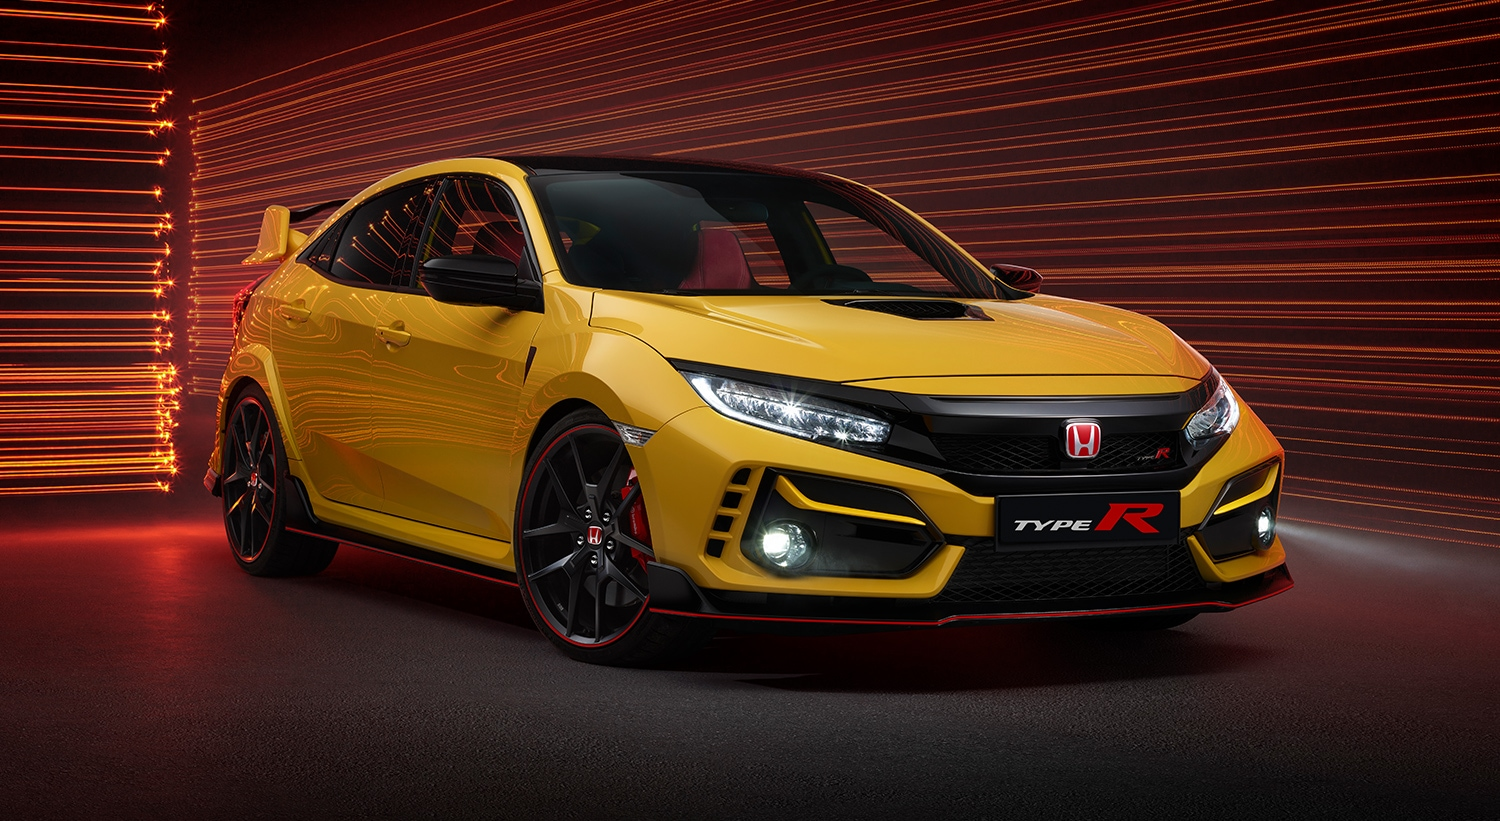 Honda brings back Phoenix Yellow for limited edition Civic ...